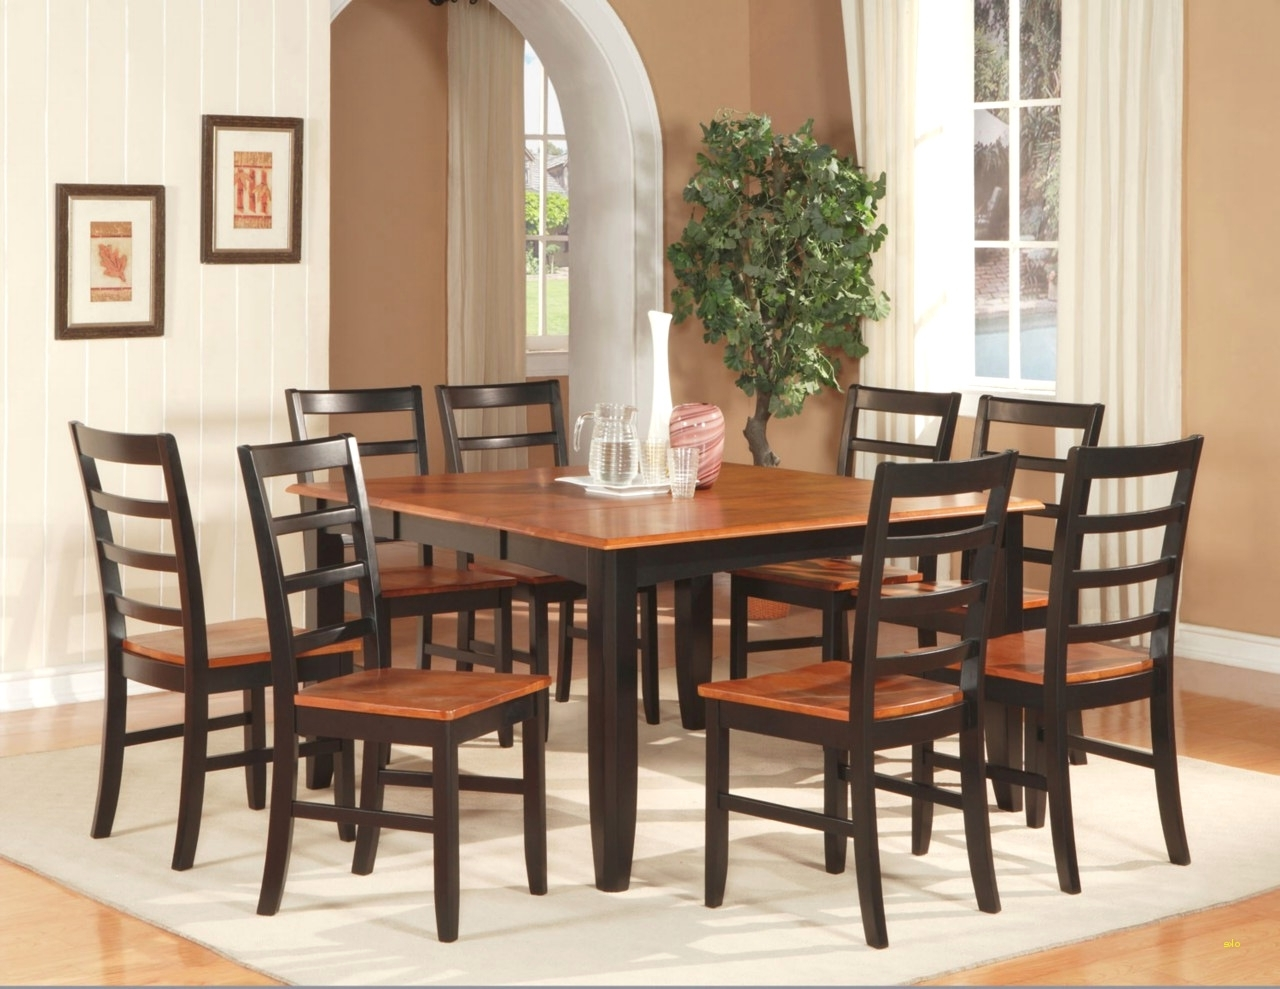 Awesome Dining Room Table Sets 8 Chairs At Dining Room Table Plans In Most Current Dining Tables 8 Chairs Set (View 1 of 25)